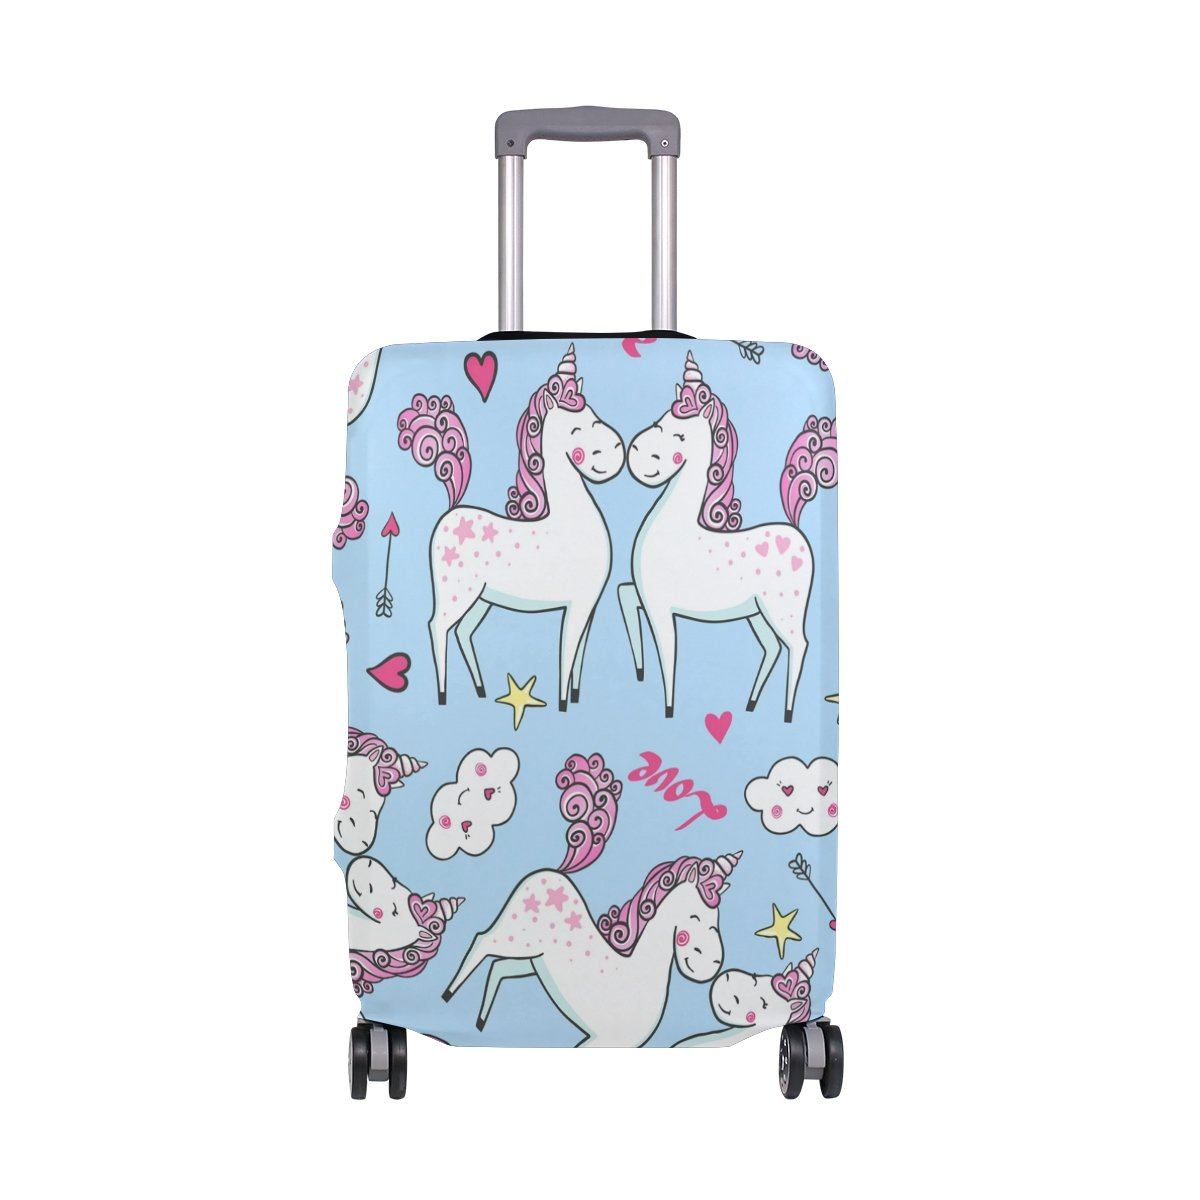 Cute Unicorn Love Stars Valentine's Day Birthday Suitcase Luggage Cover Protector for Travel Kids Men Women